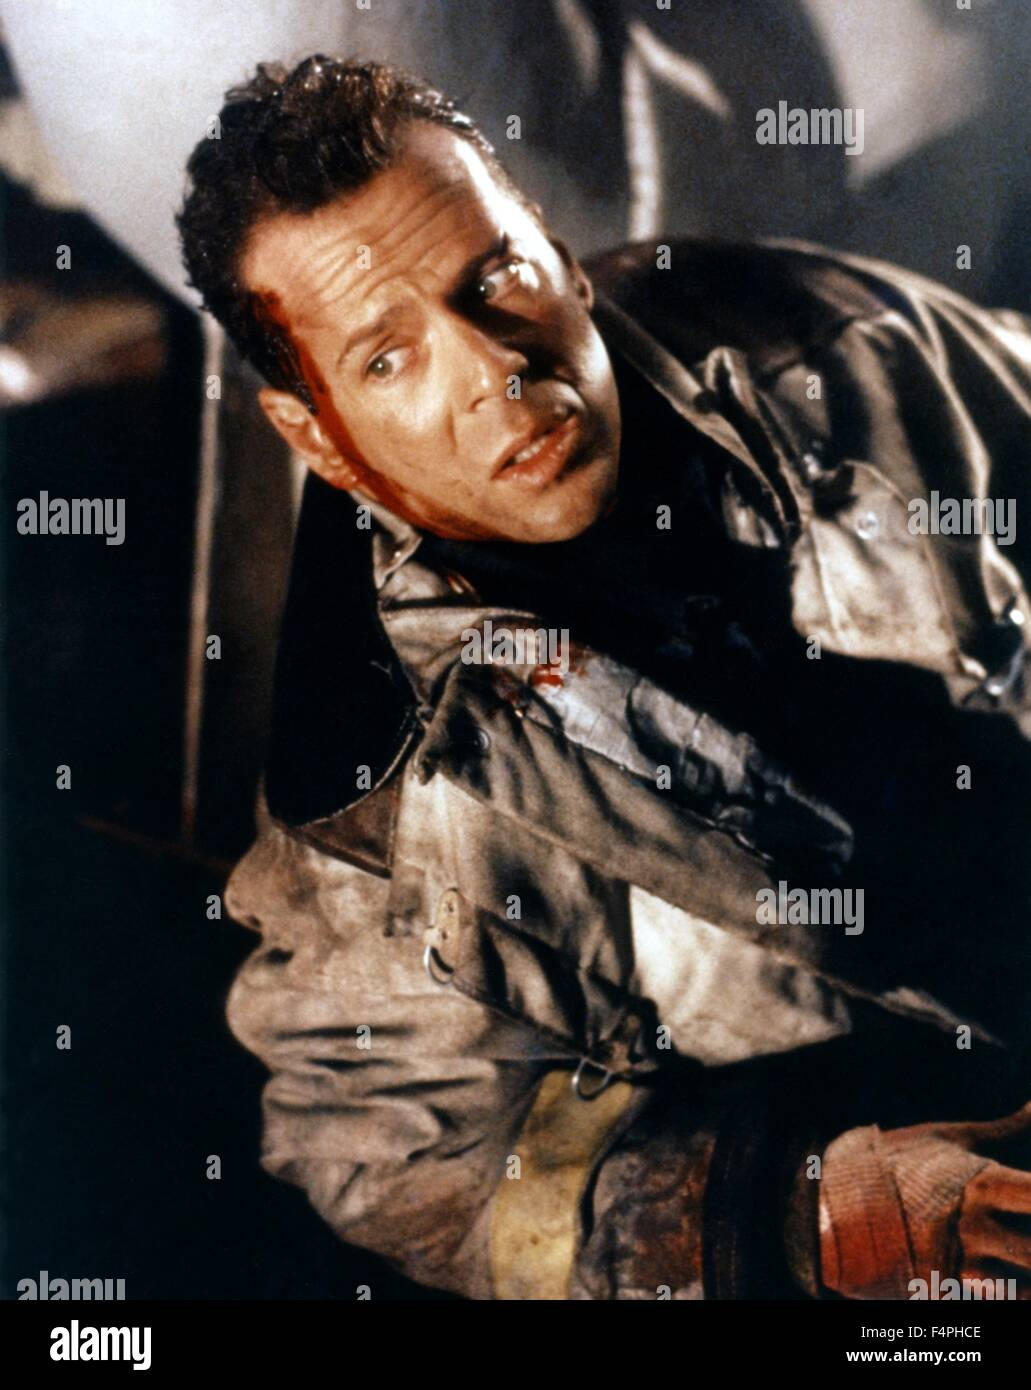 Die Hard 2 High Resolution Stock Photography And Images Alamy